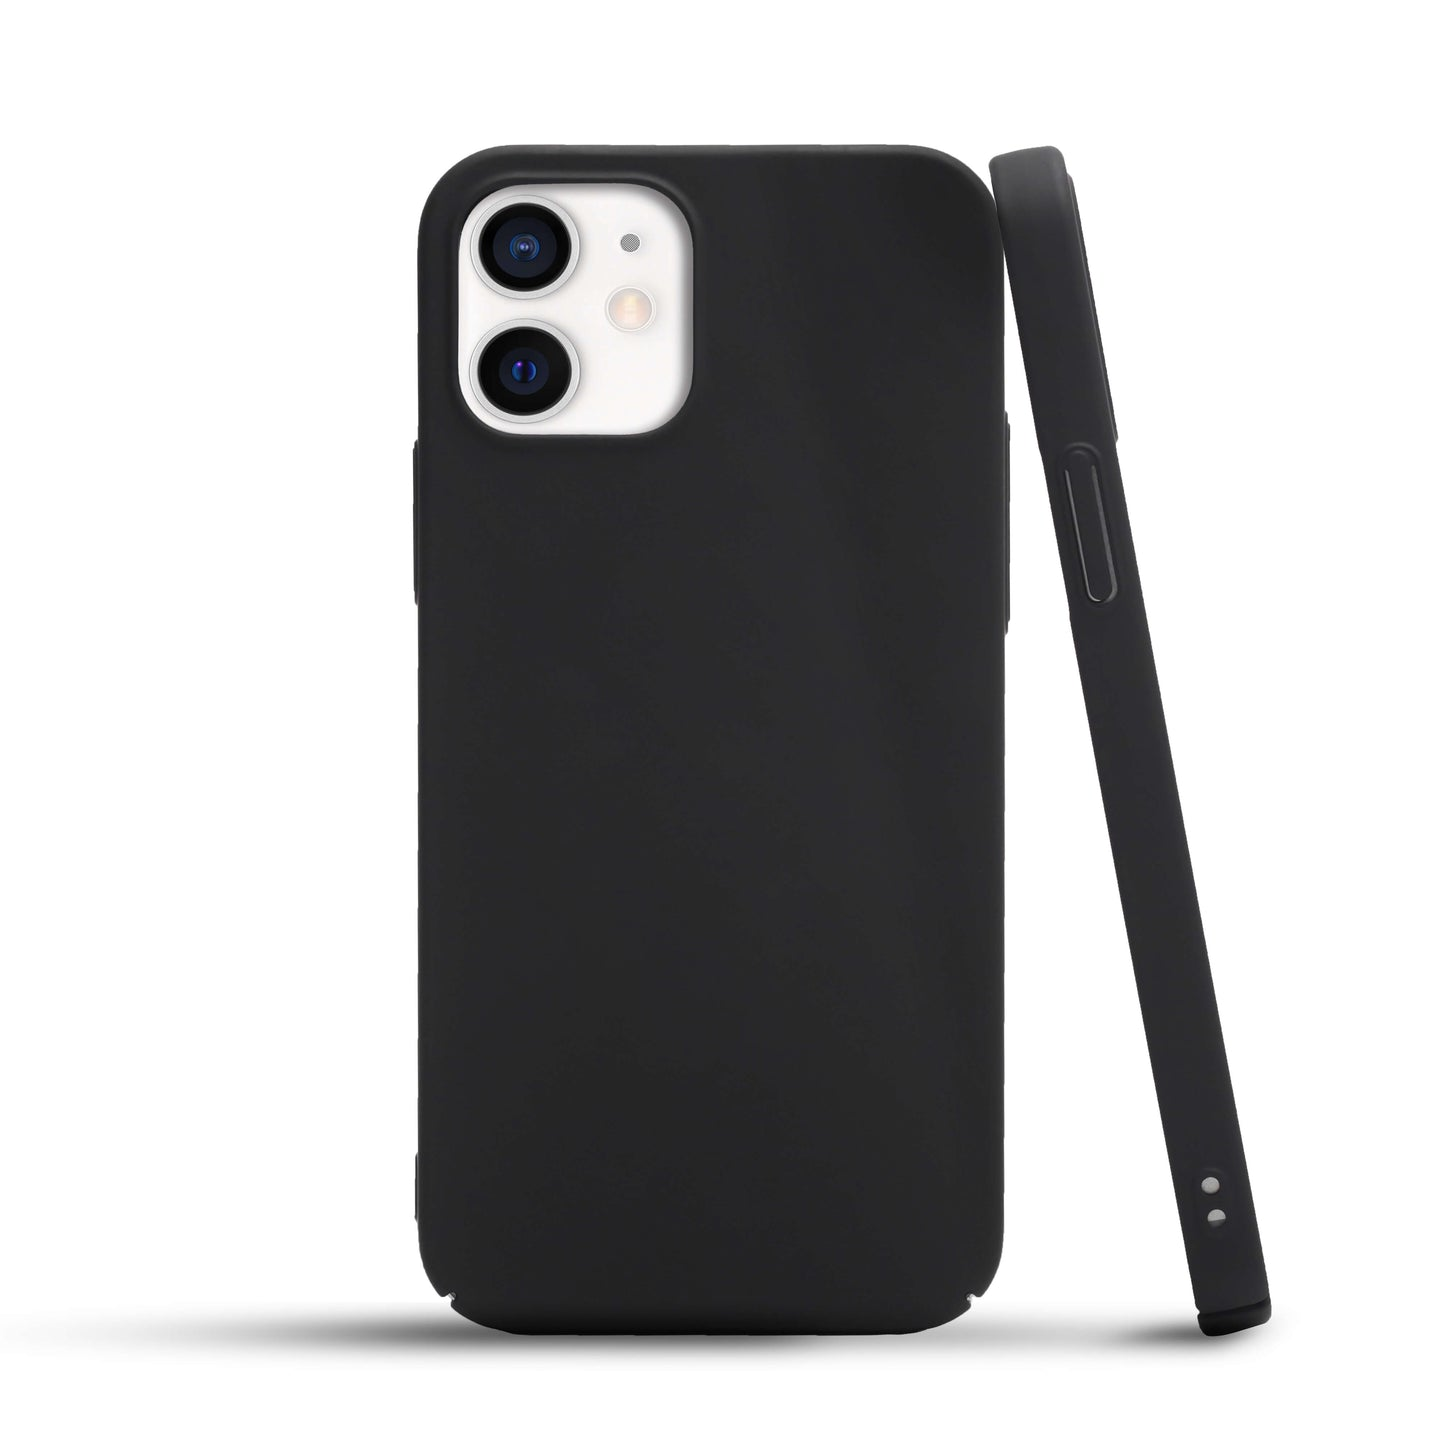 Slim Minimal iPhone 12 Case 2.0 & Screen Protector Bundle